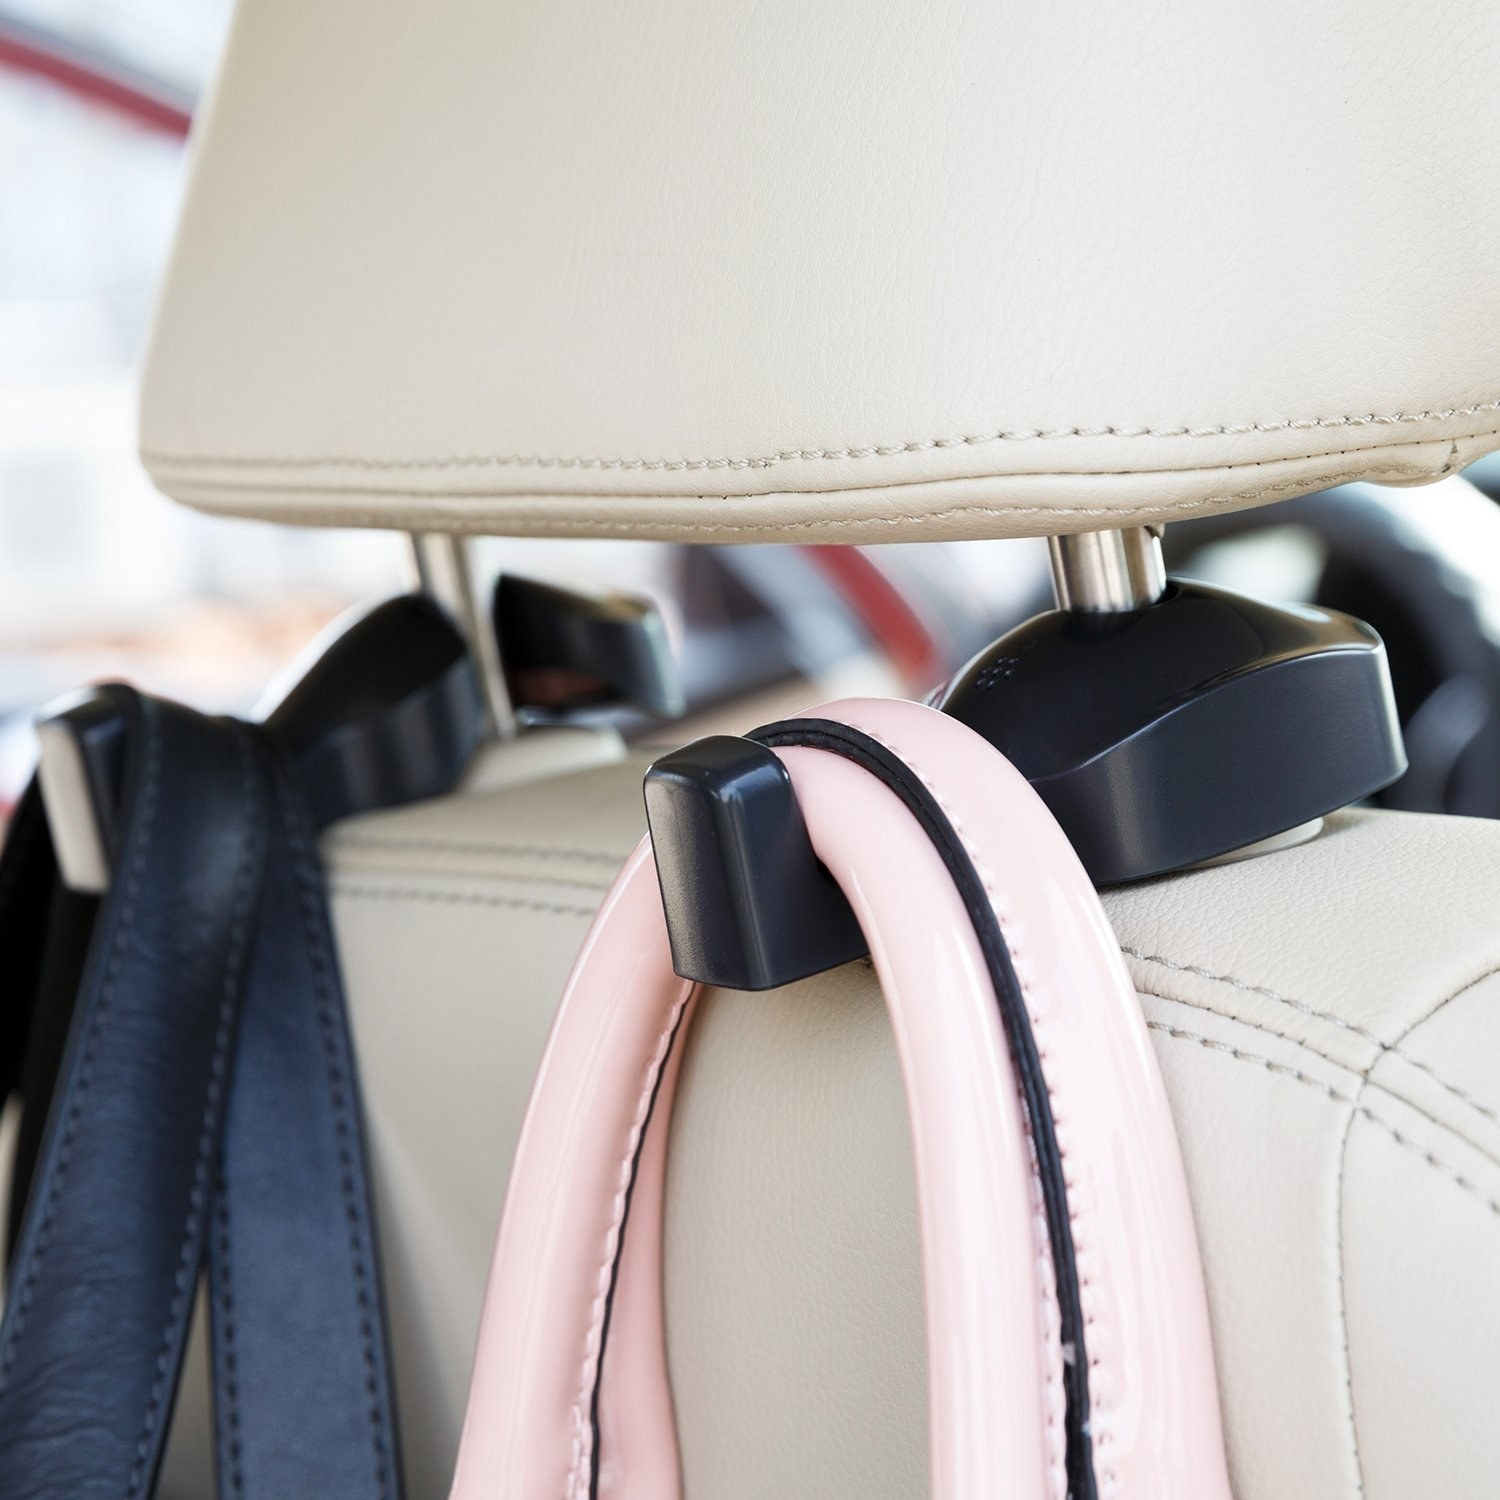 A close of the hanger hooks holding bags while placed on a car's headrest.